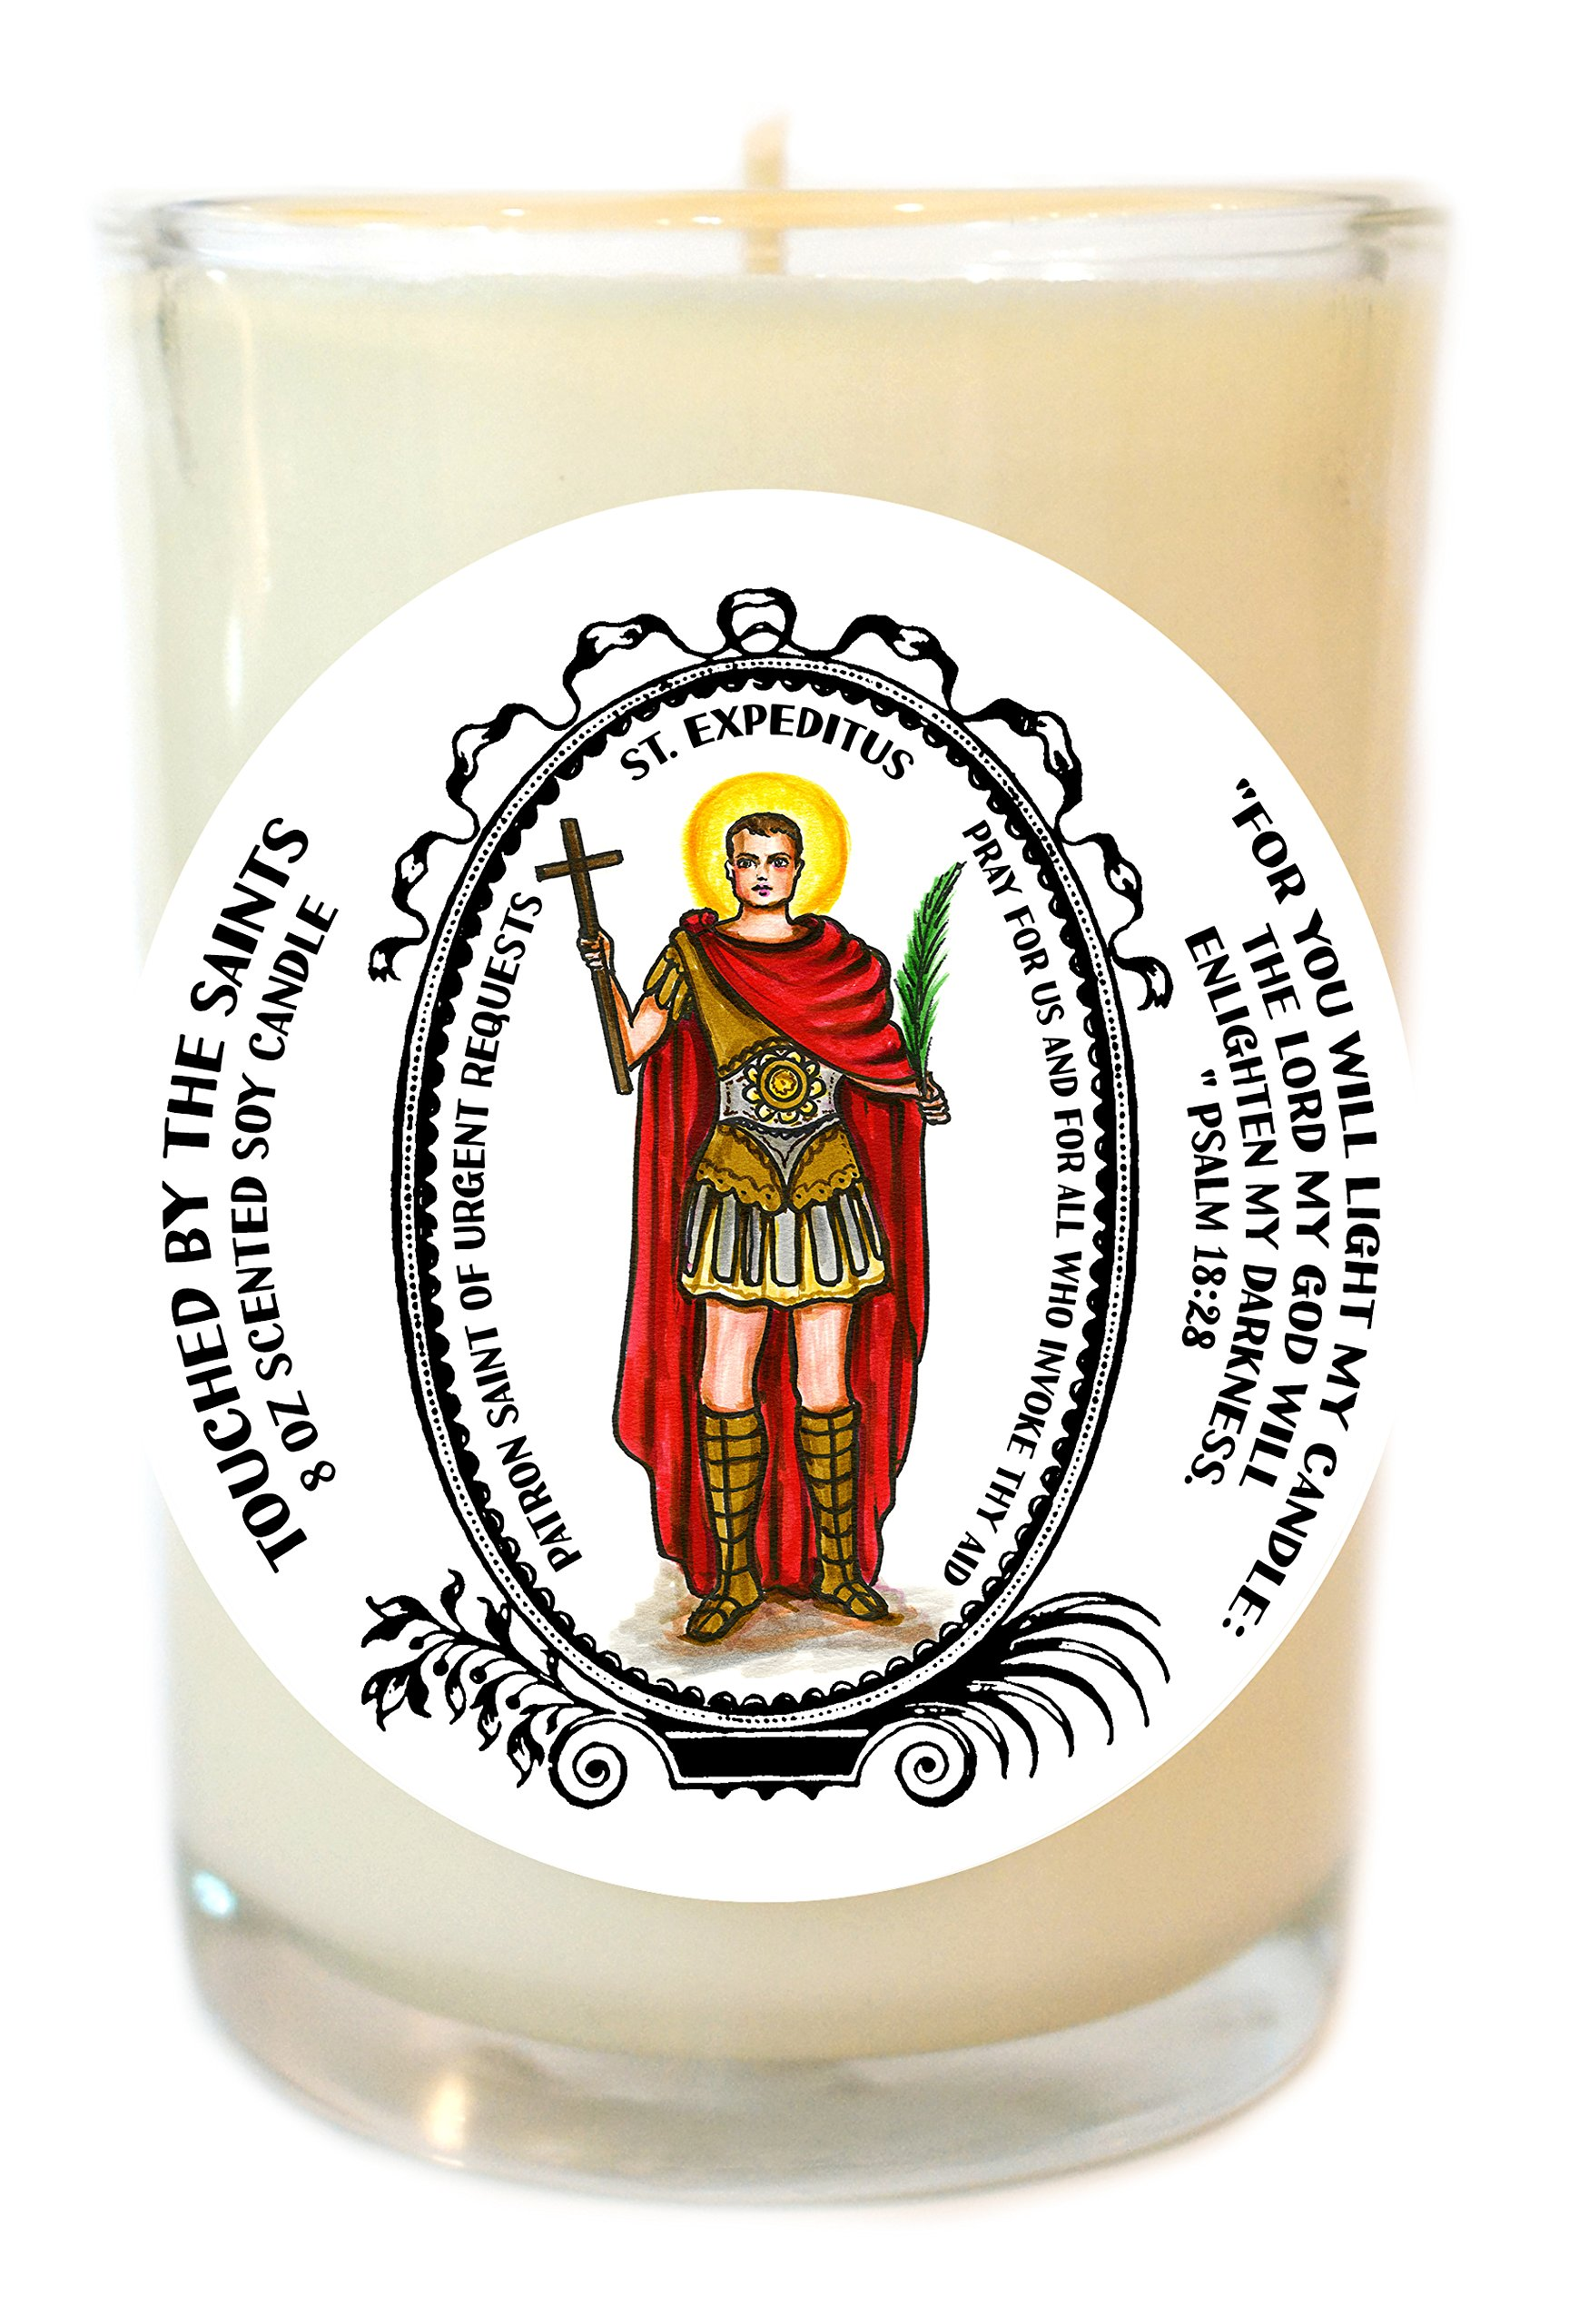 Saint Expeditus for Urgent Requests 8 Oz Scented Soy Glass Prayer Candle